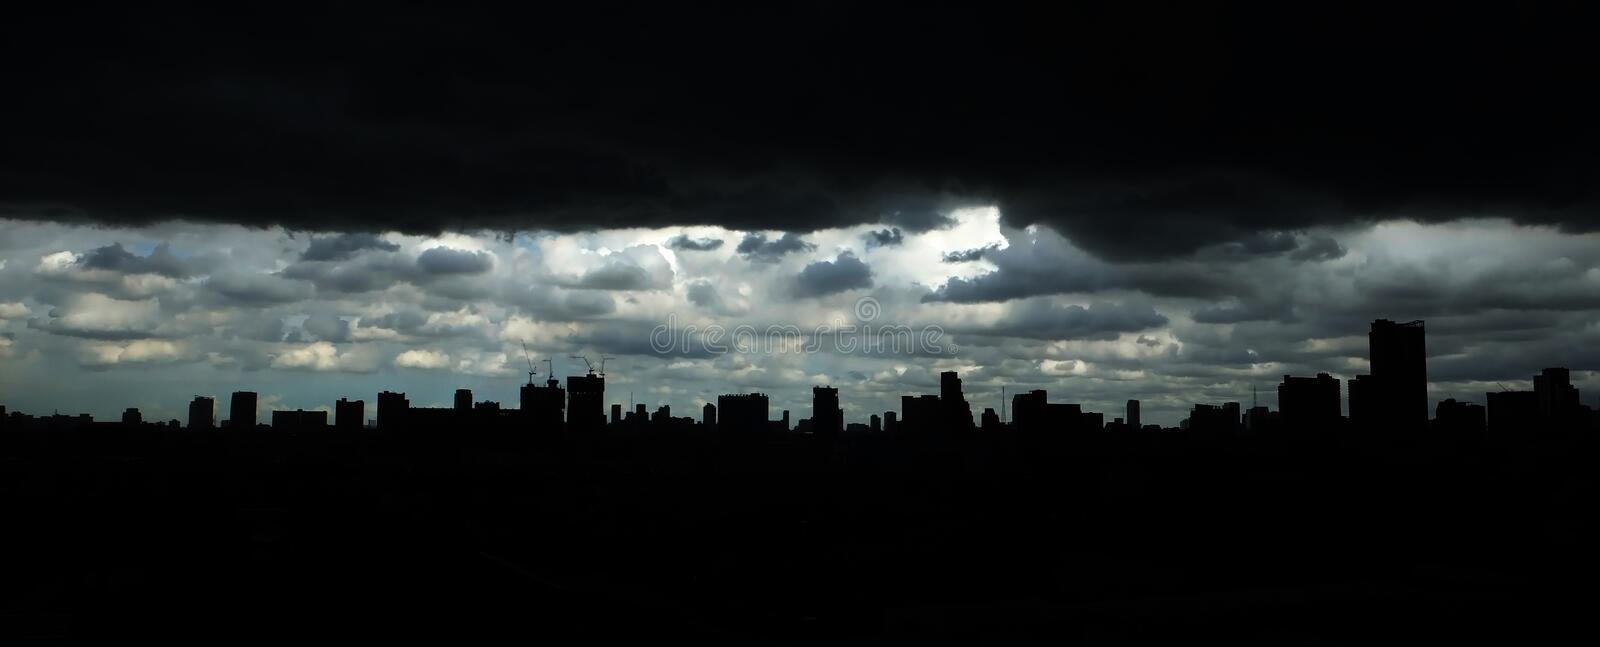 City scape of building royalty free stock images